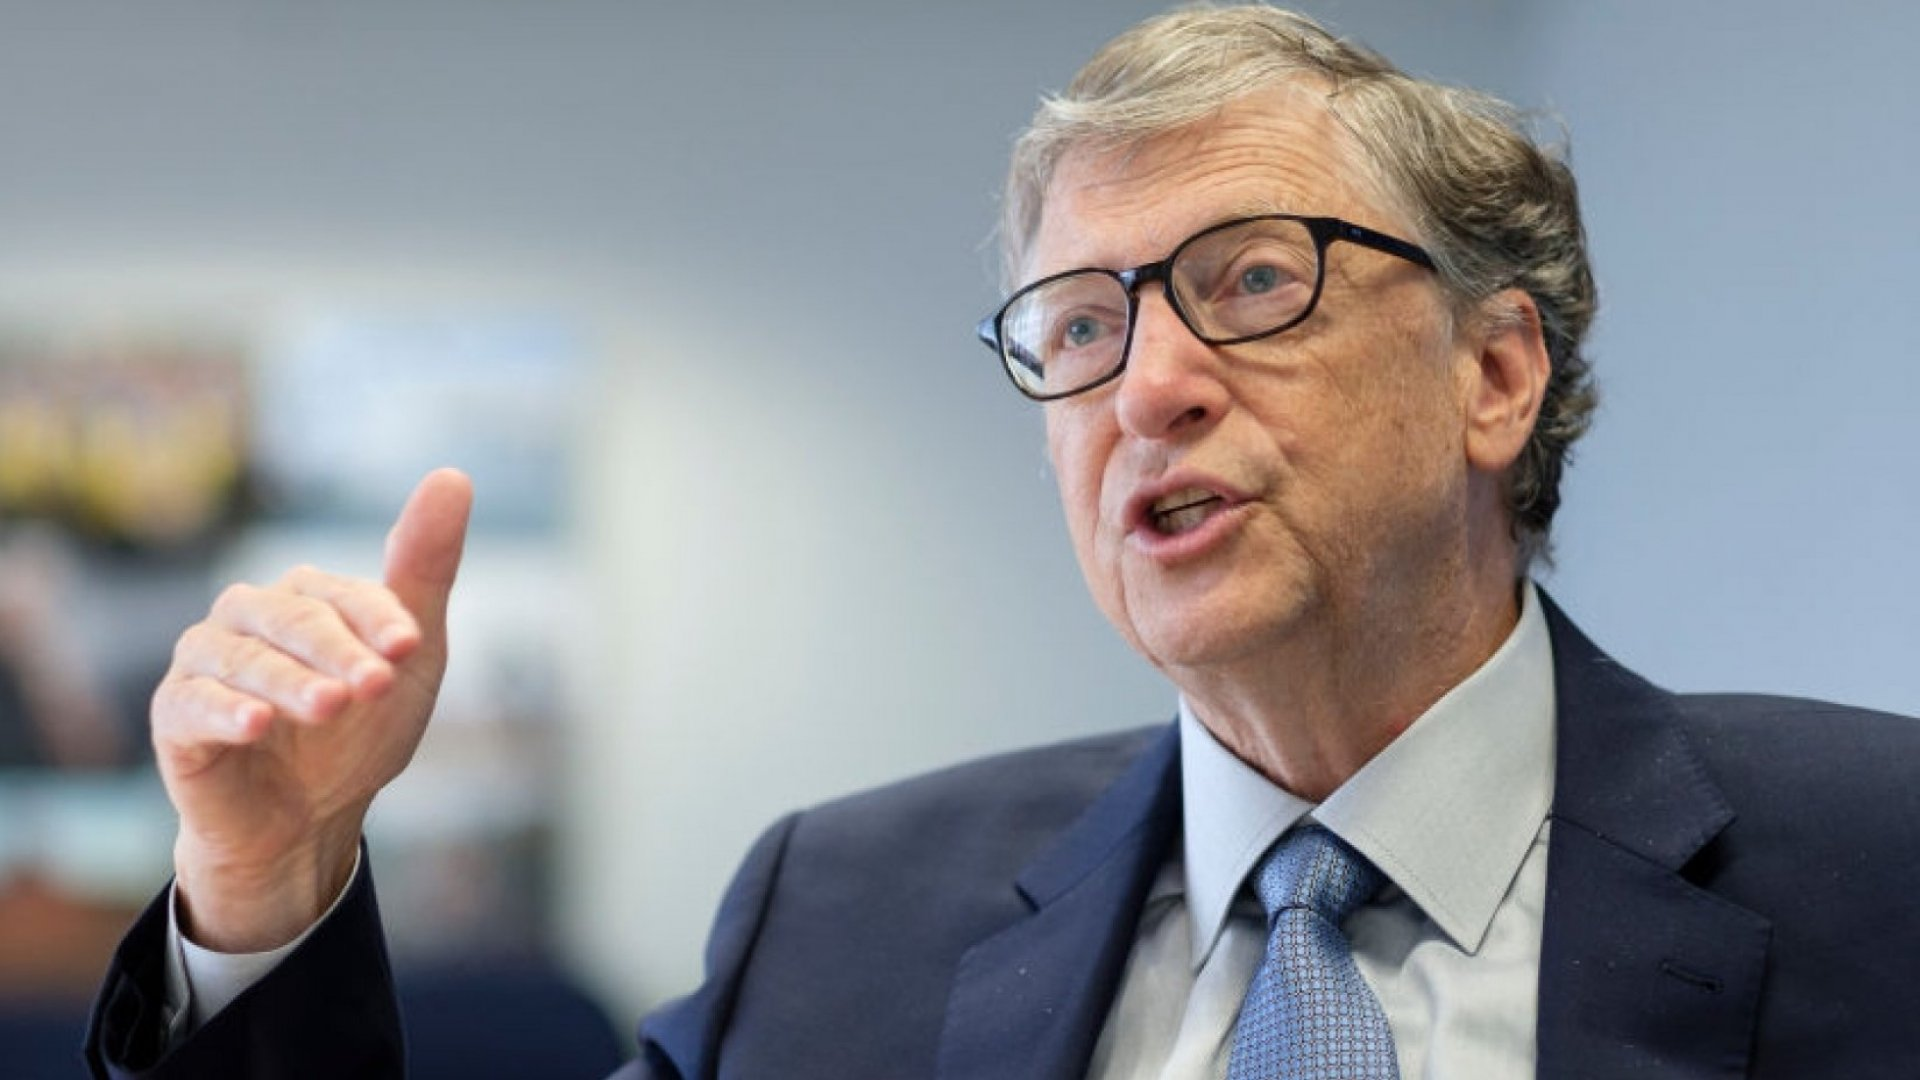 According to Bill Gates, Asking These 2 Questions Will Make You a Better Leader